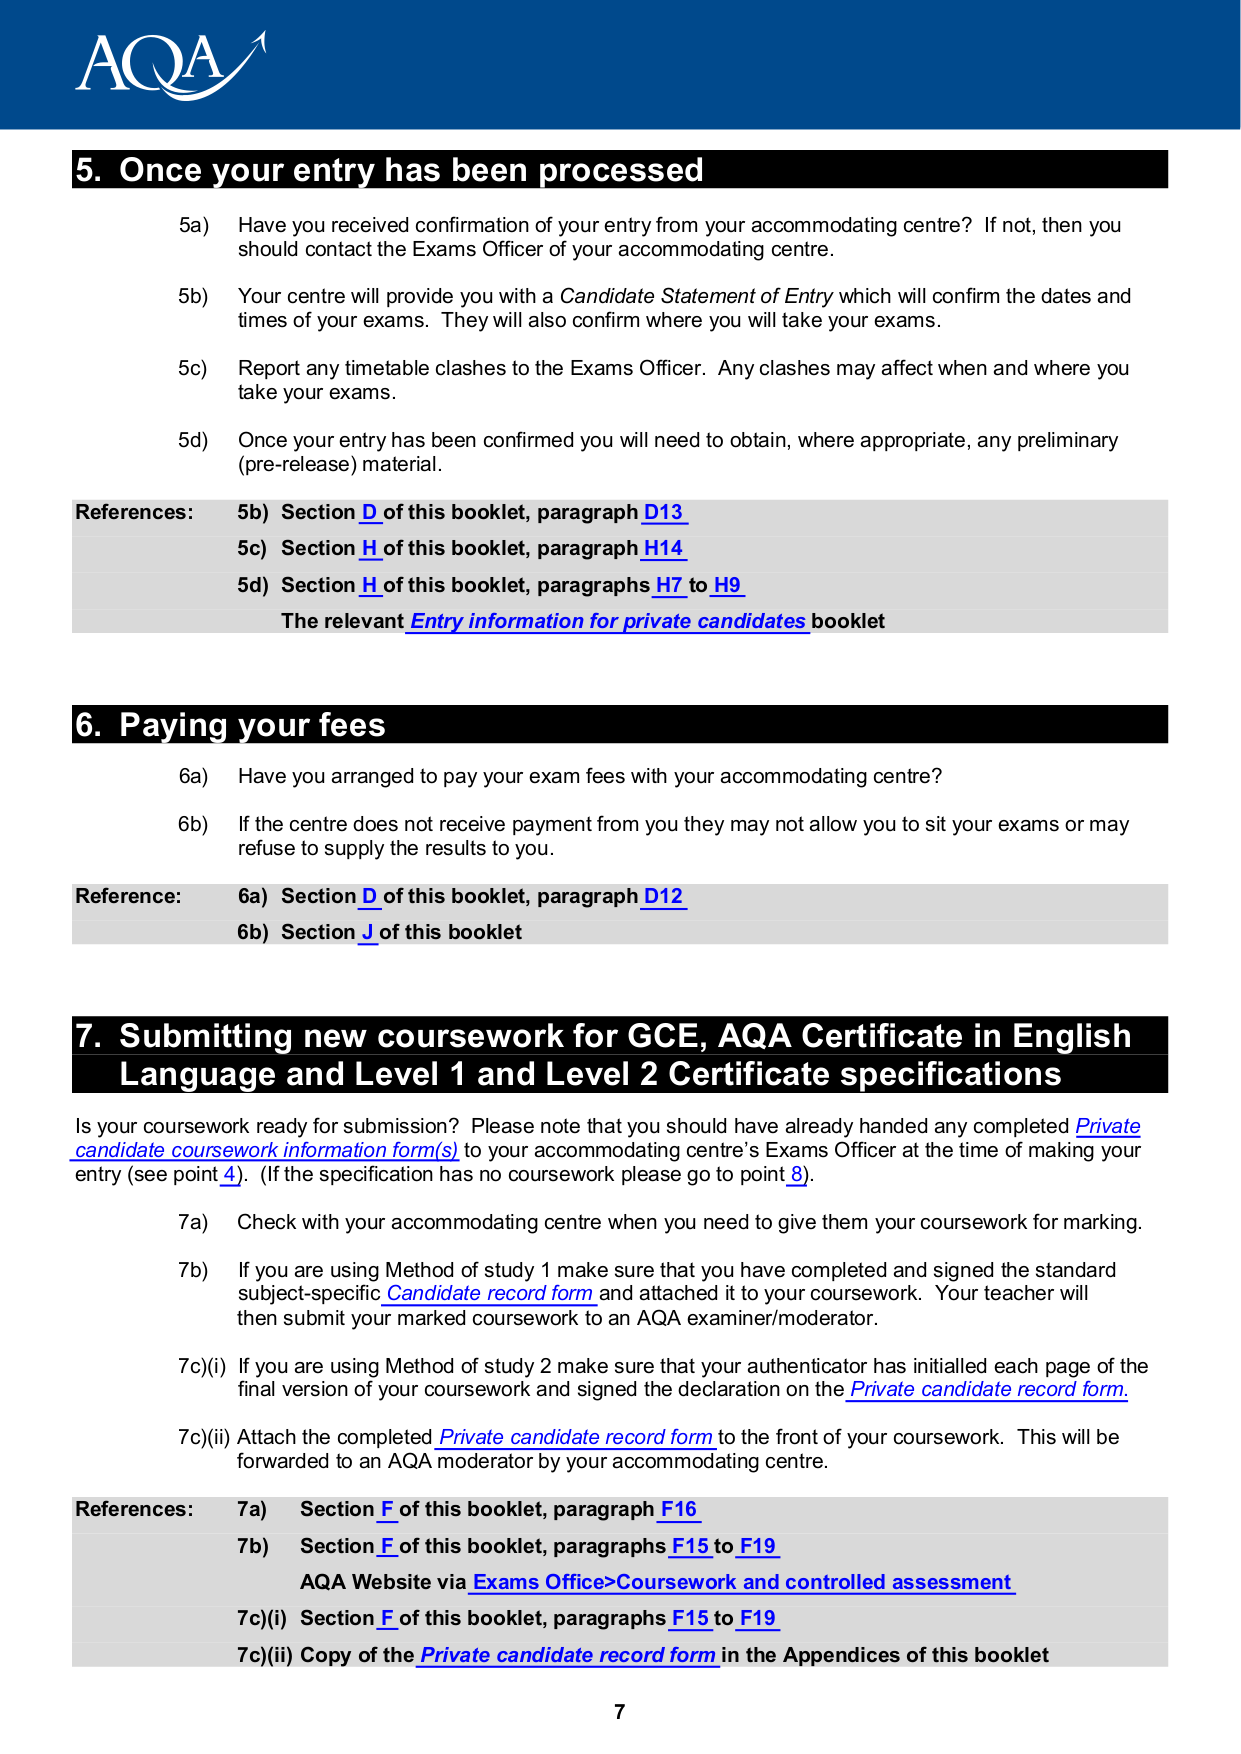 aqa coursework submission forms We all know that science coursework can be all that you have to do is enter your information on what you need to have done through the order submission form.